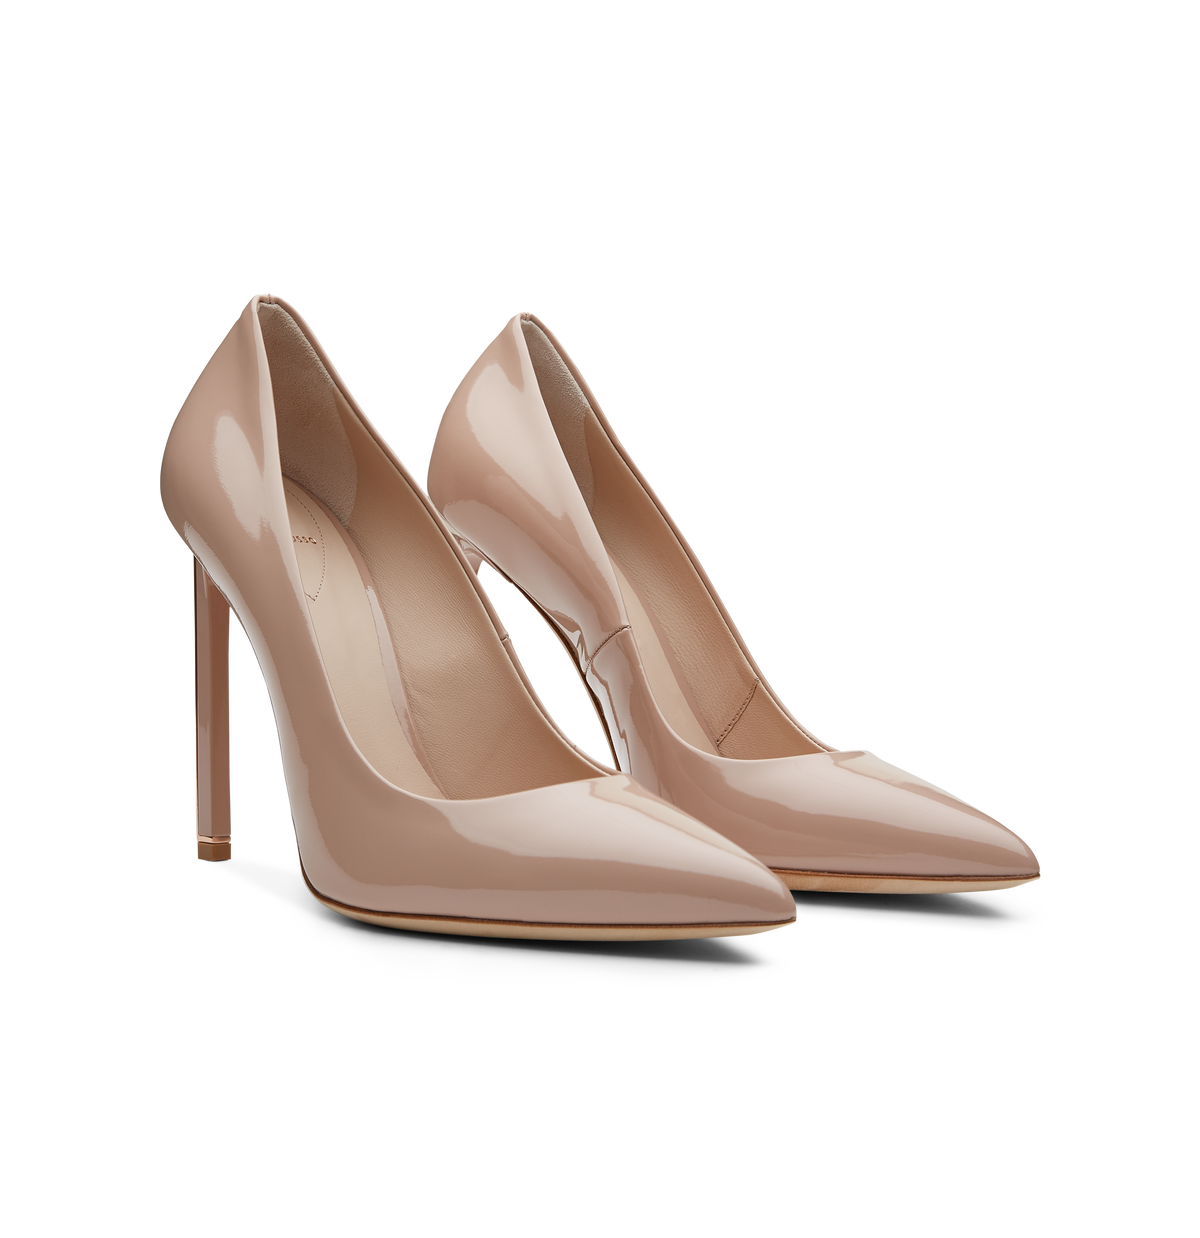 Nude Patent Leather Empire Pumps